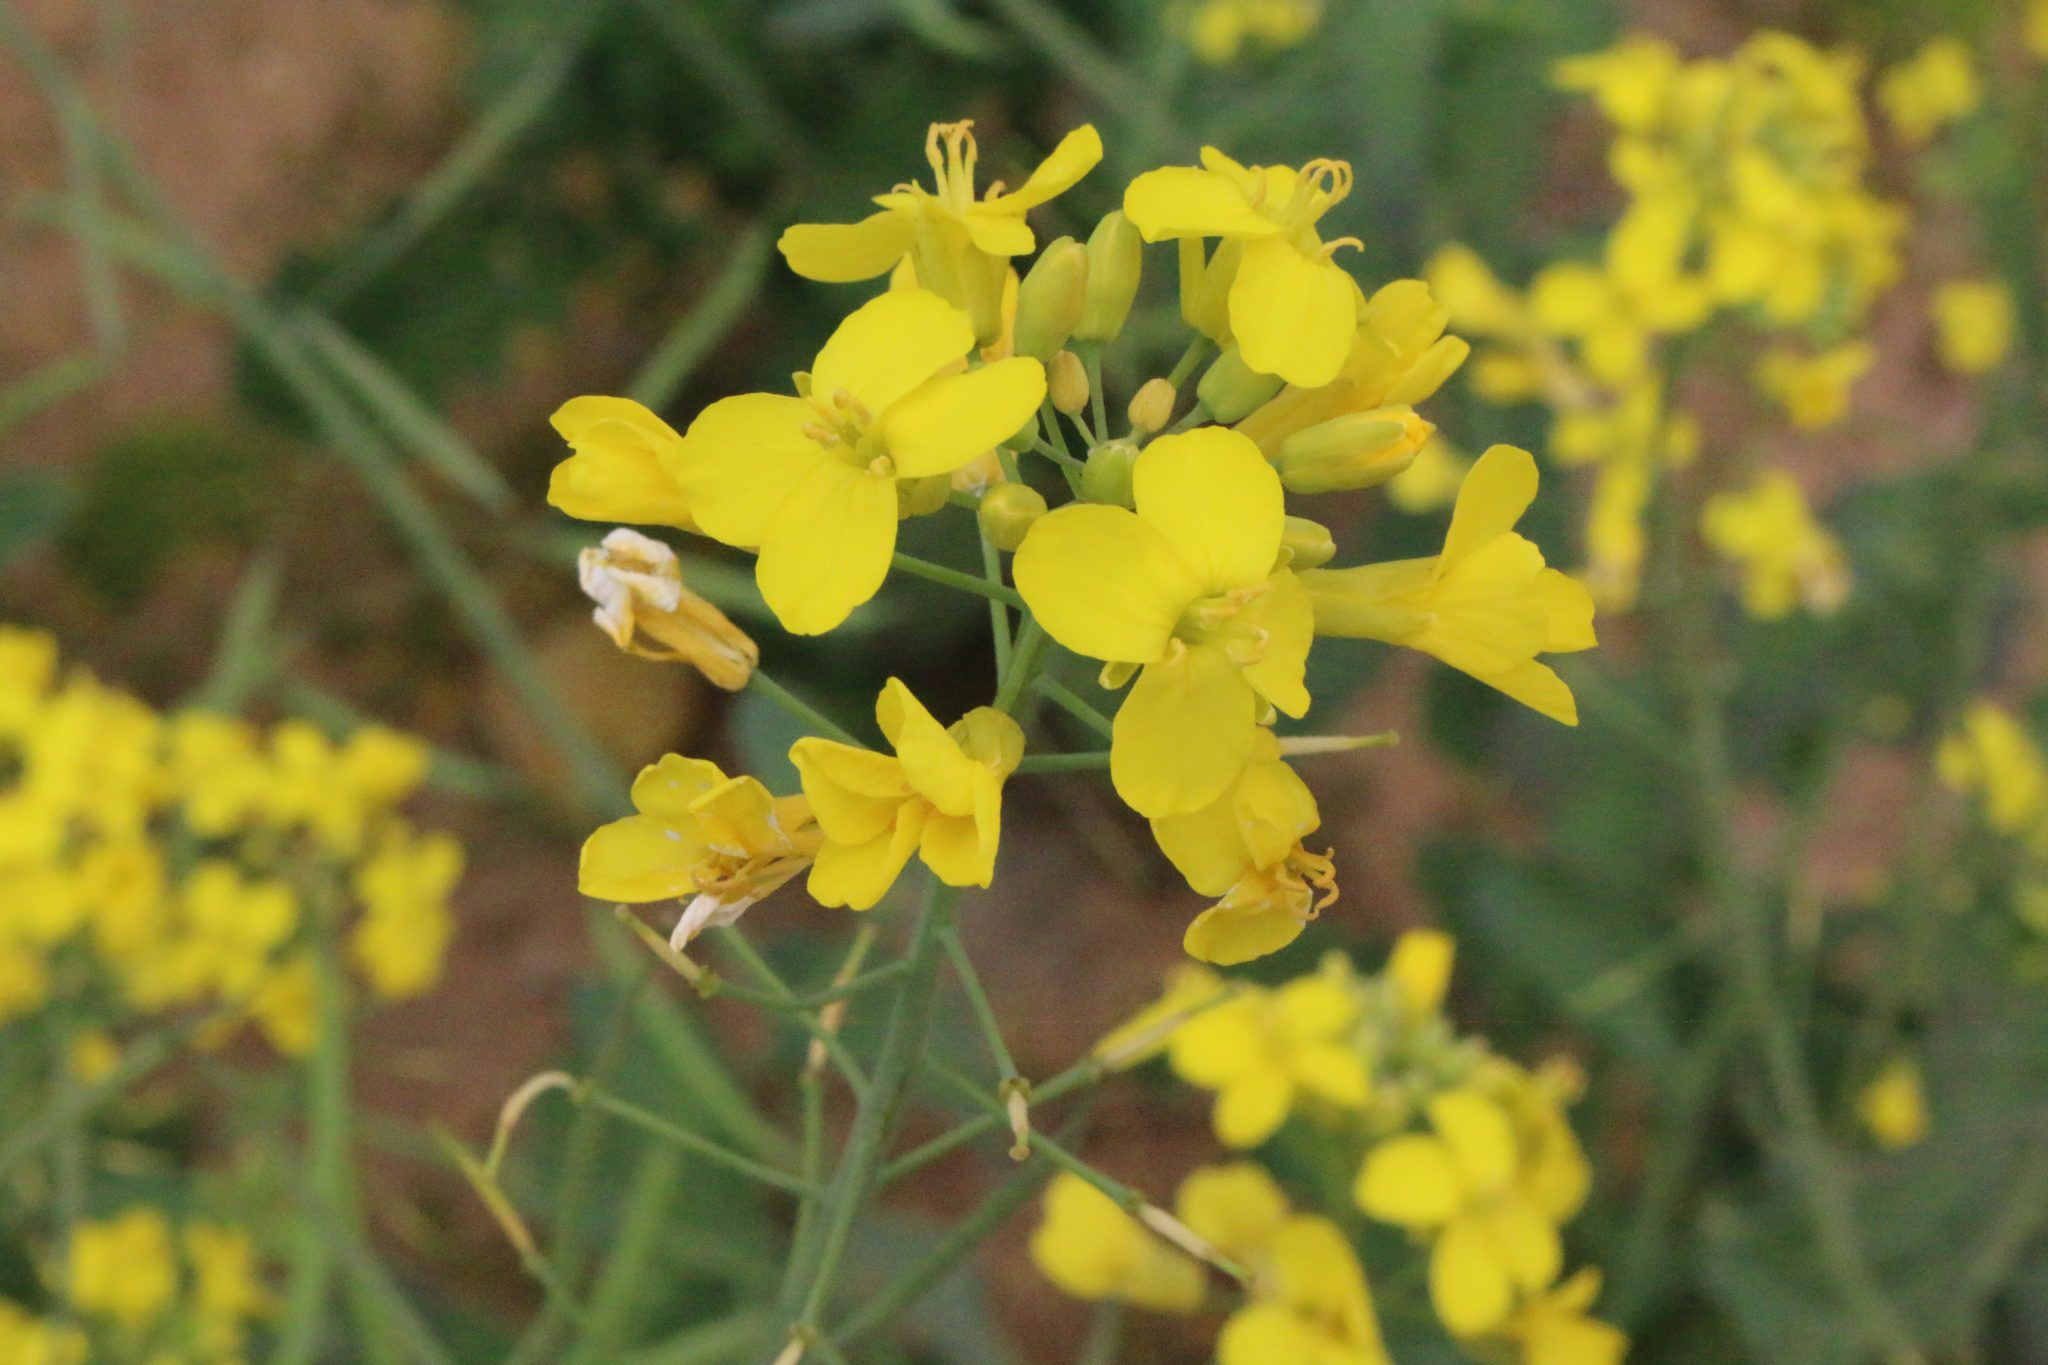 Canola is an alternative cover crop for producers.